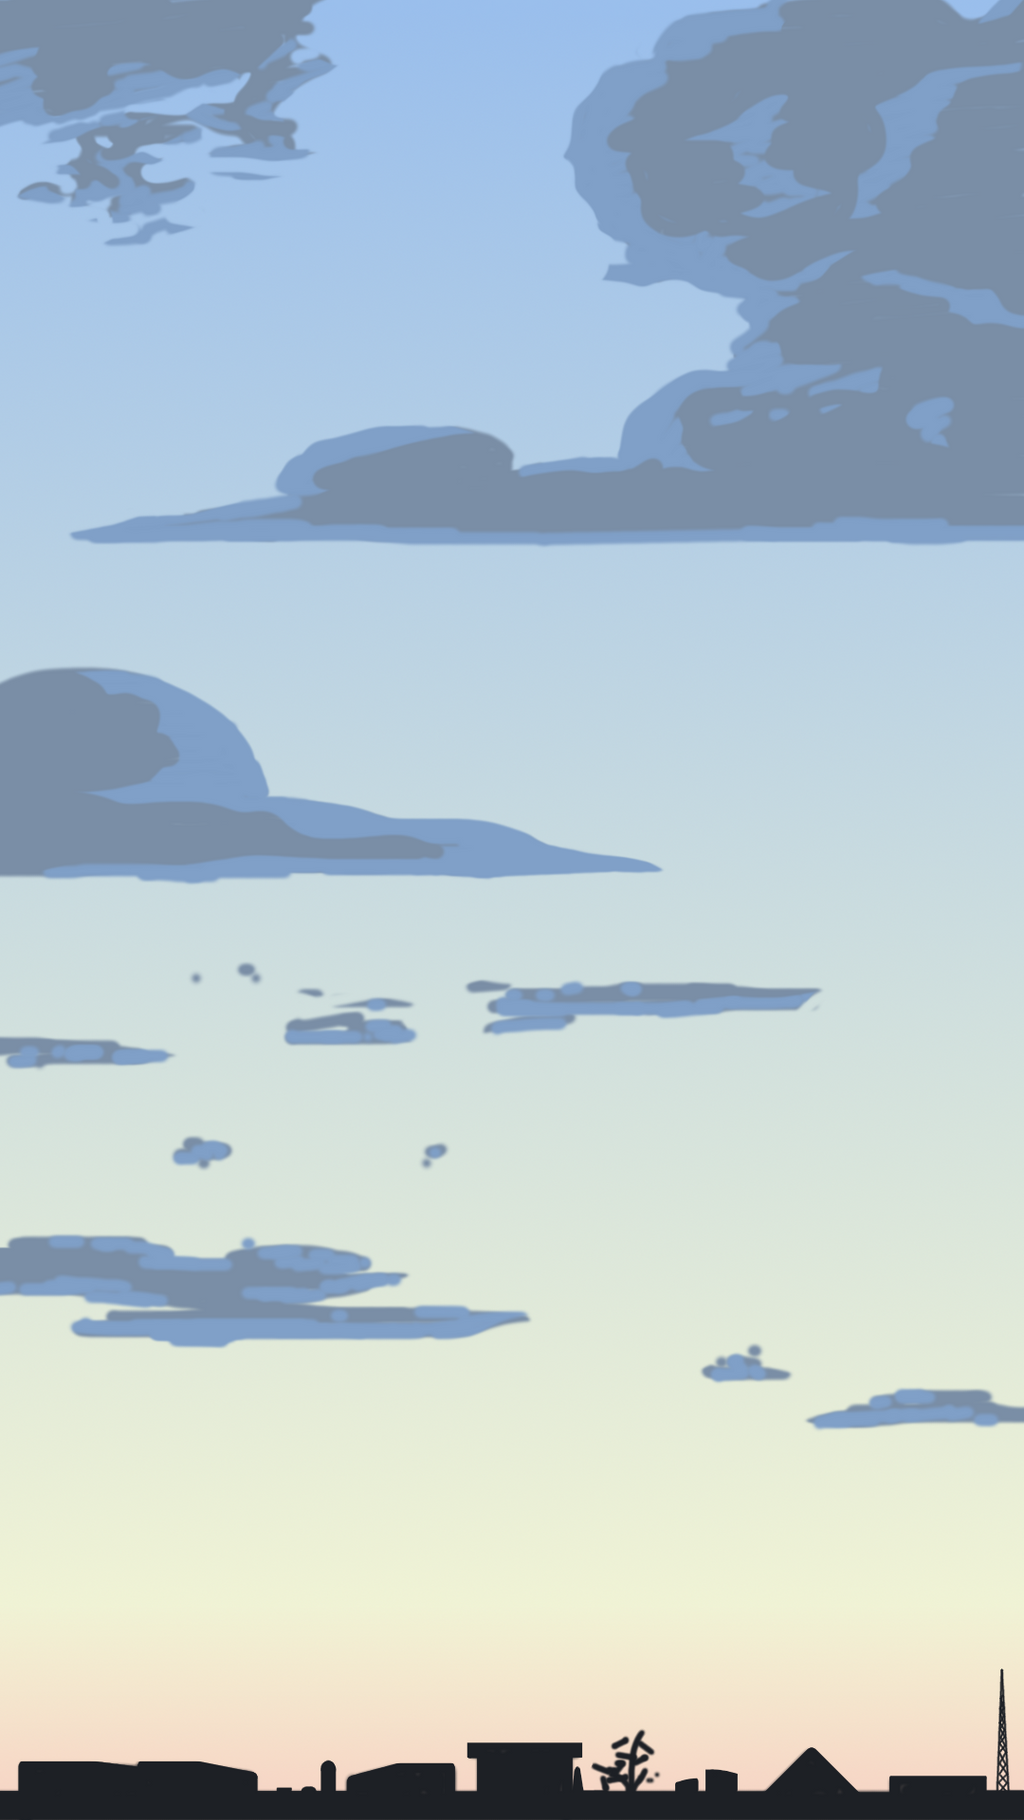 cool sky practice 11-10-2014 by HelloImRame